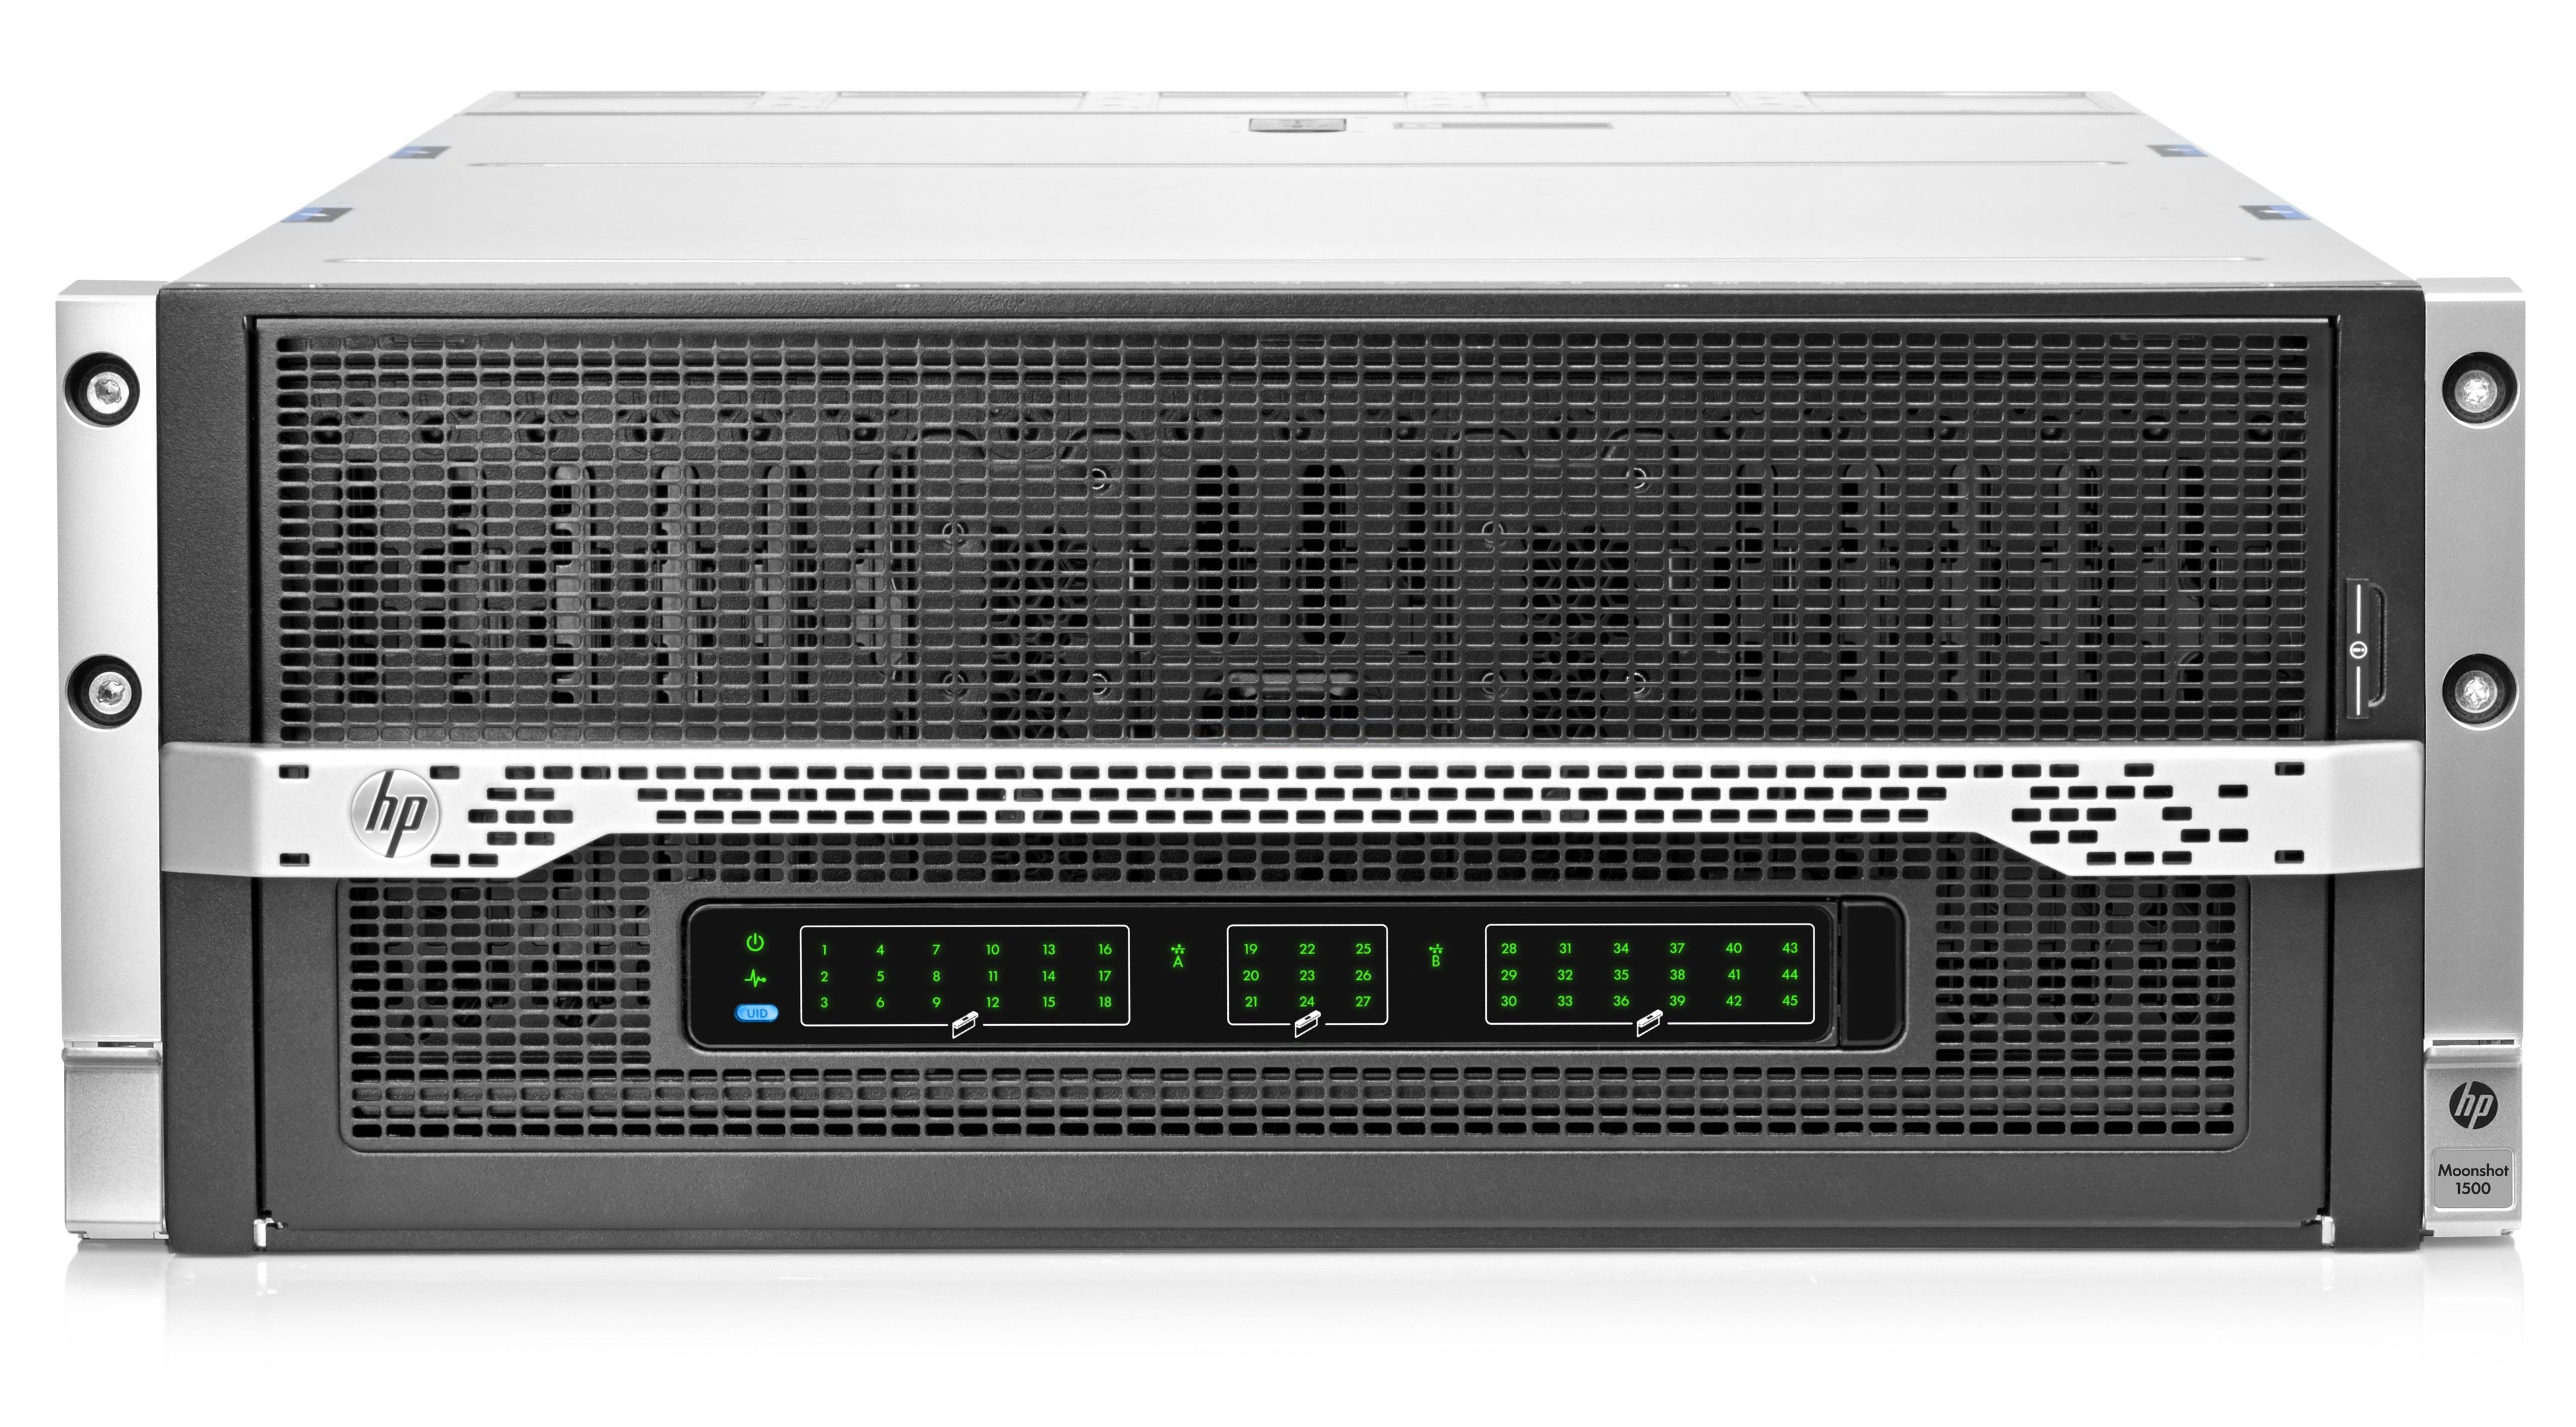 HP Moonshot 1500 System - корпус Rackmount, вид спереди